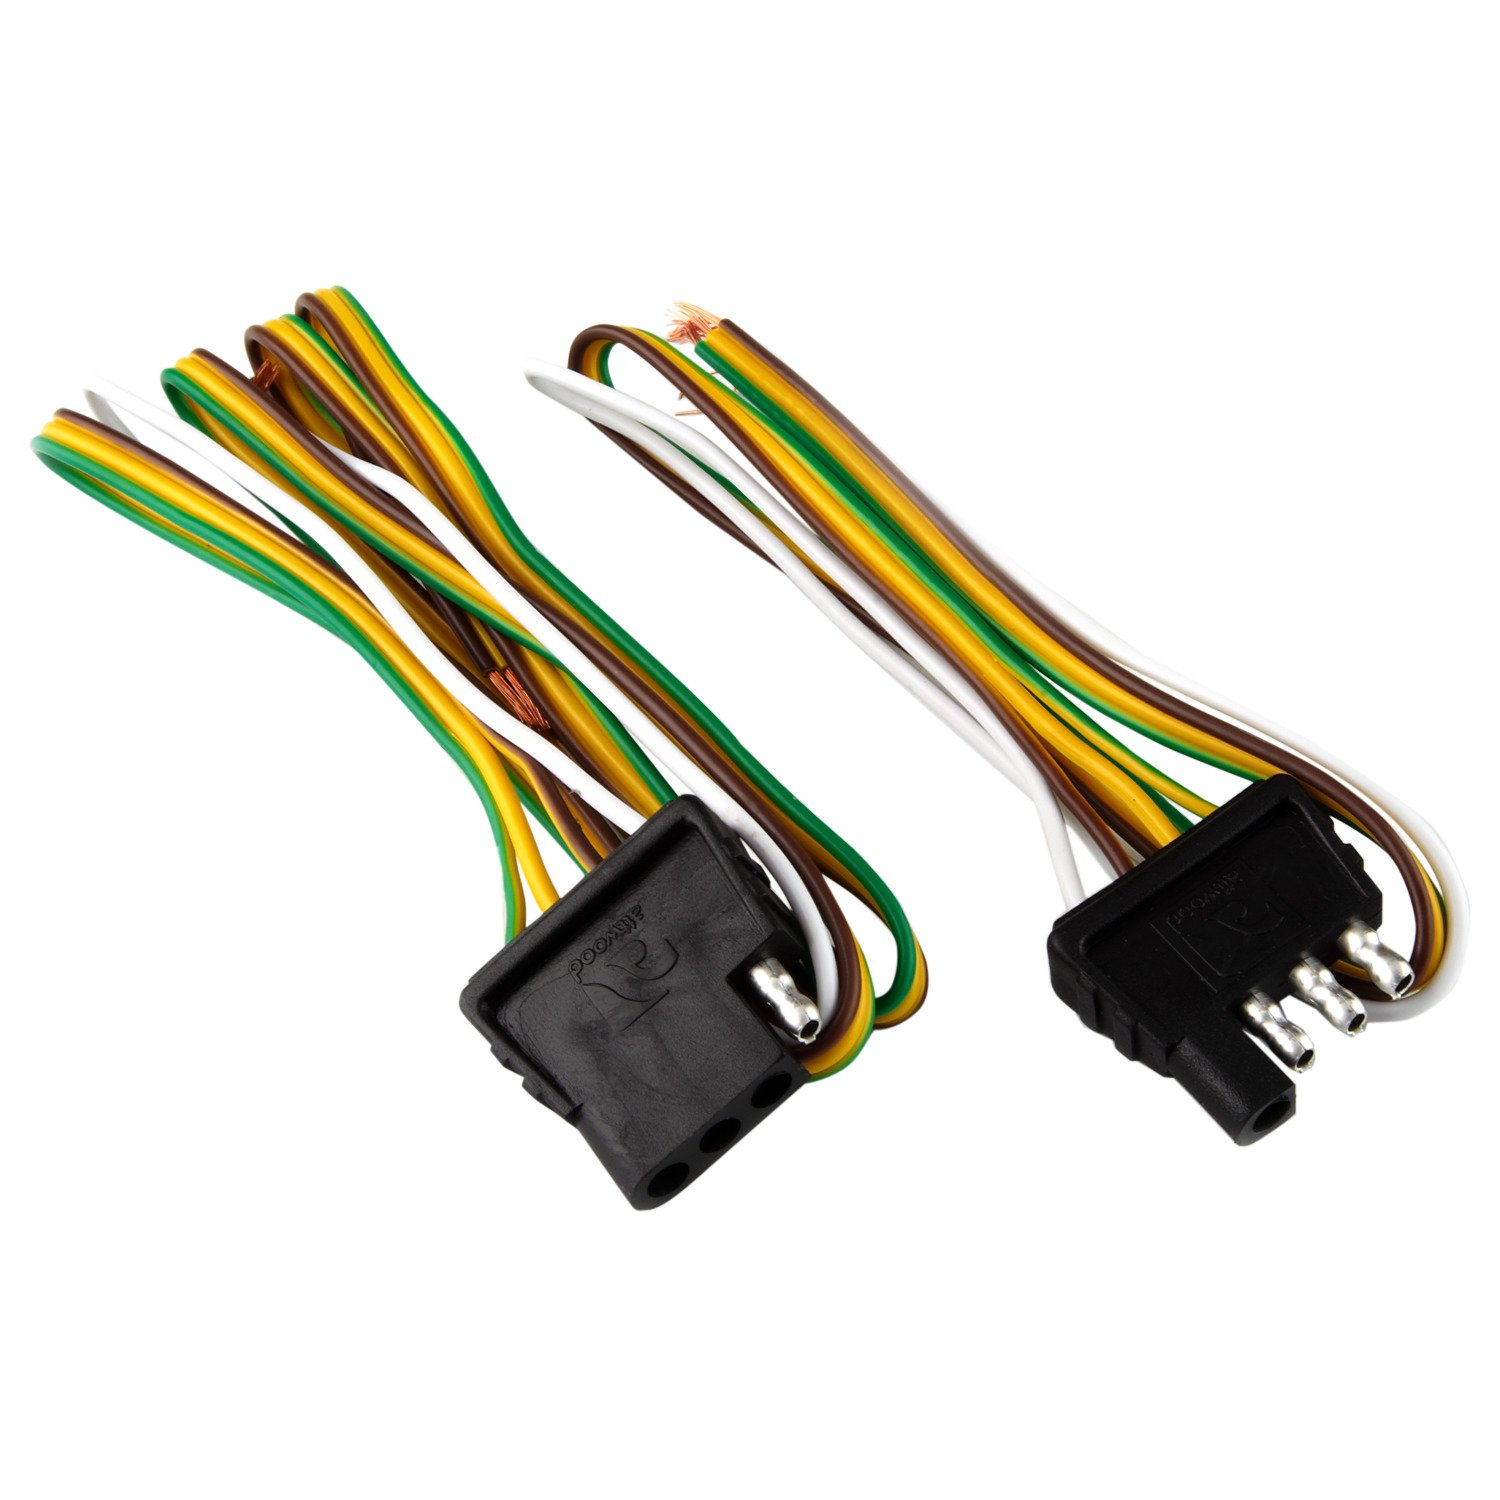 attwood 4 way flat wiring harness kit for vehicles and trailers rh academy com